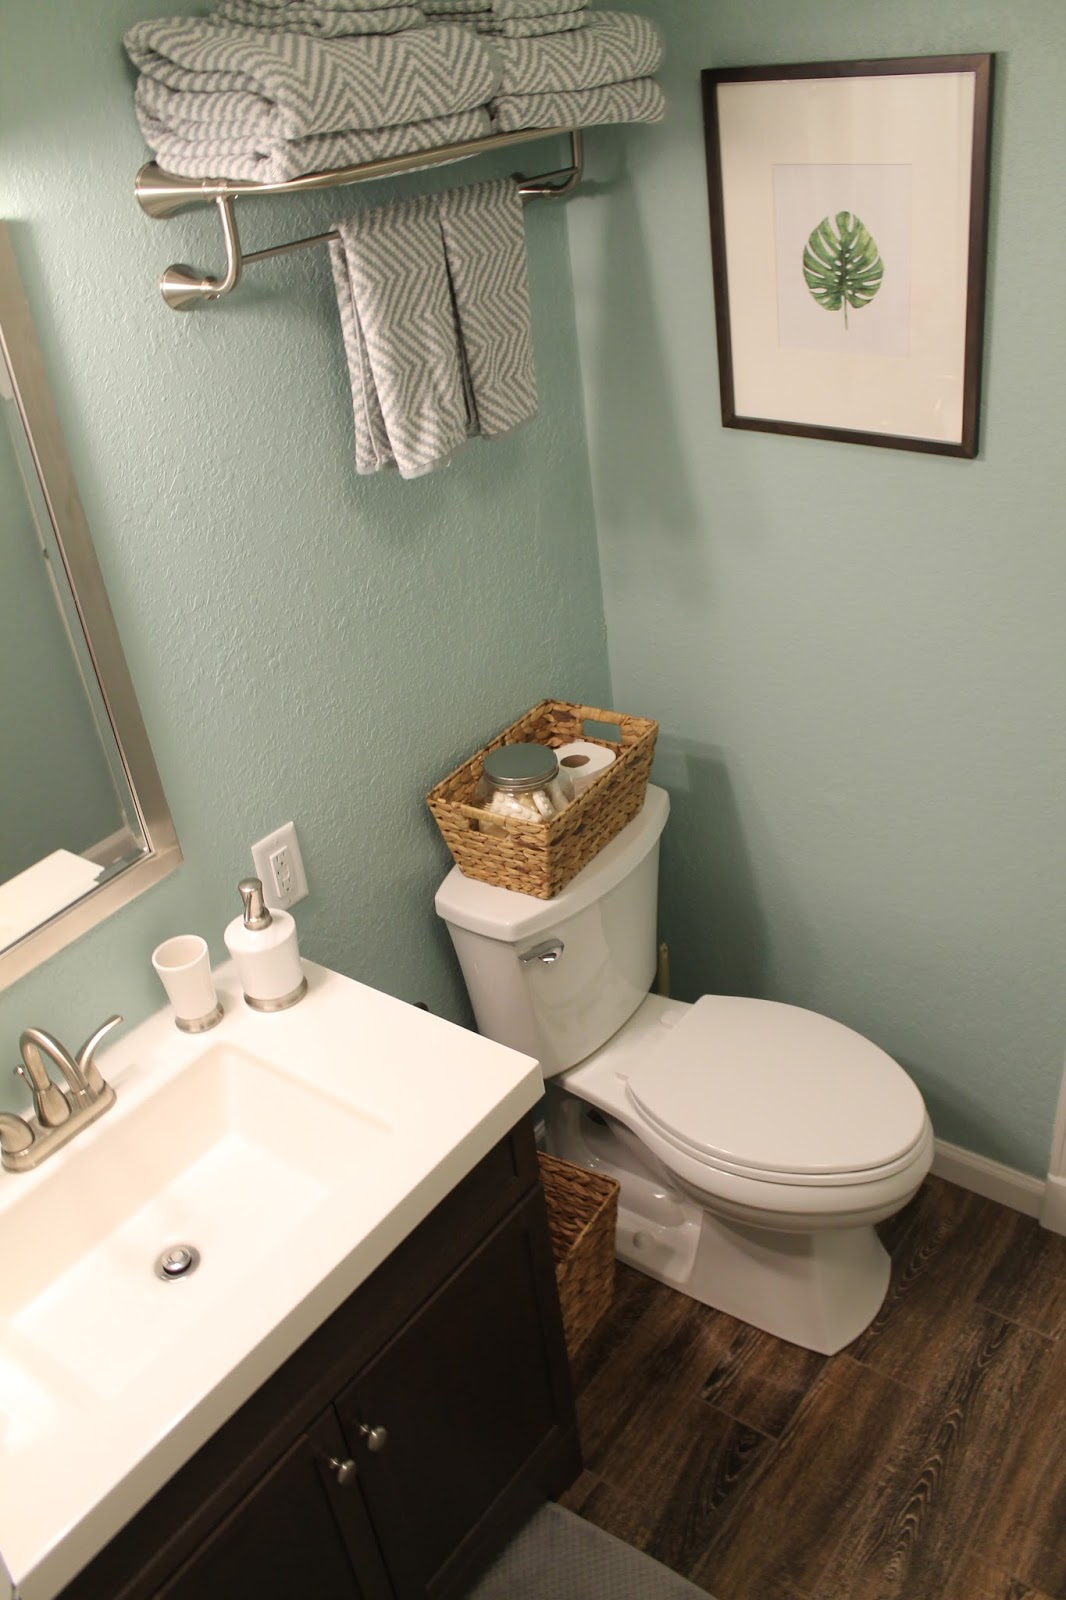 Pugs & Pearls: Guest Bathroom Remodel - The After!